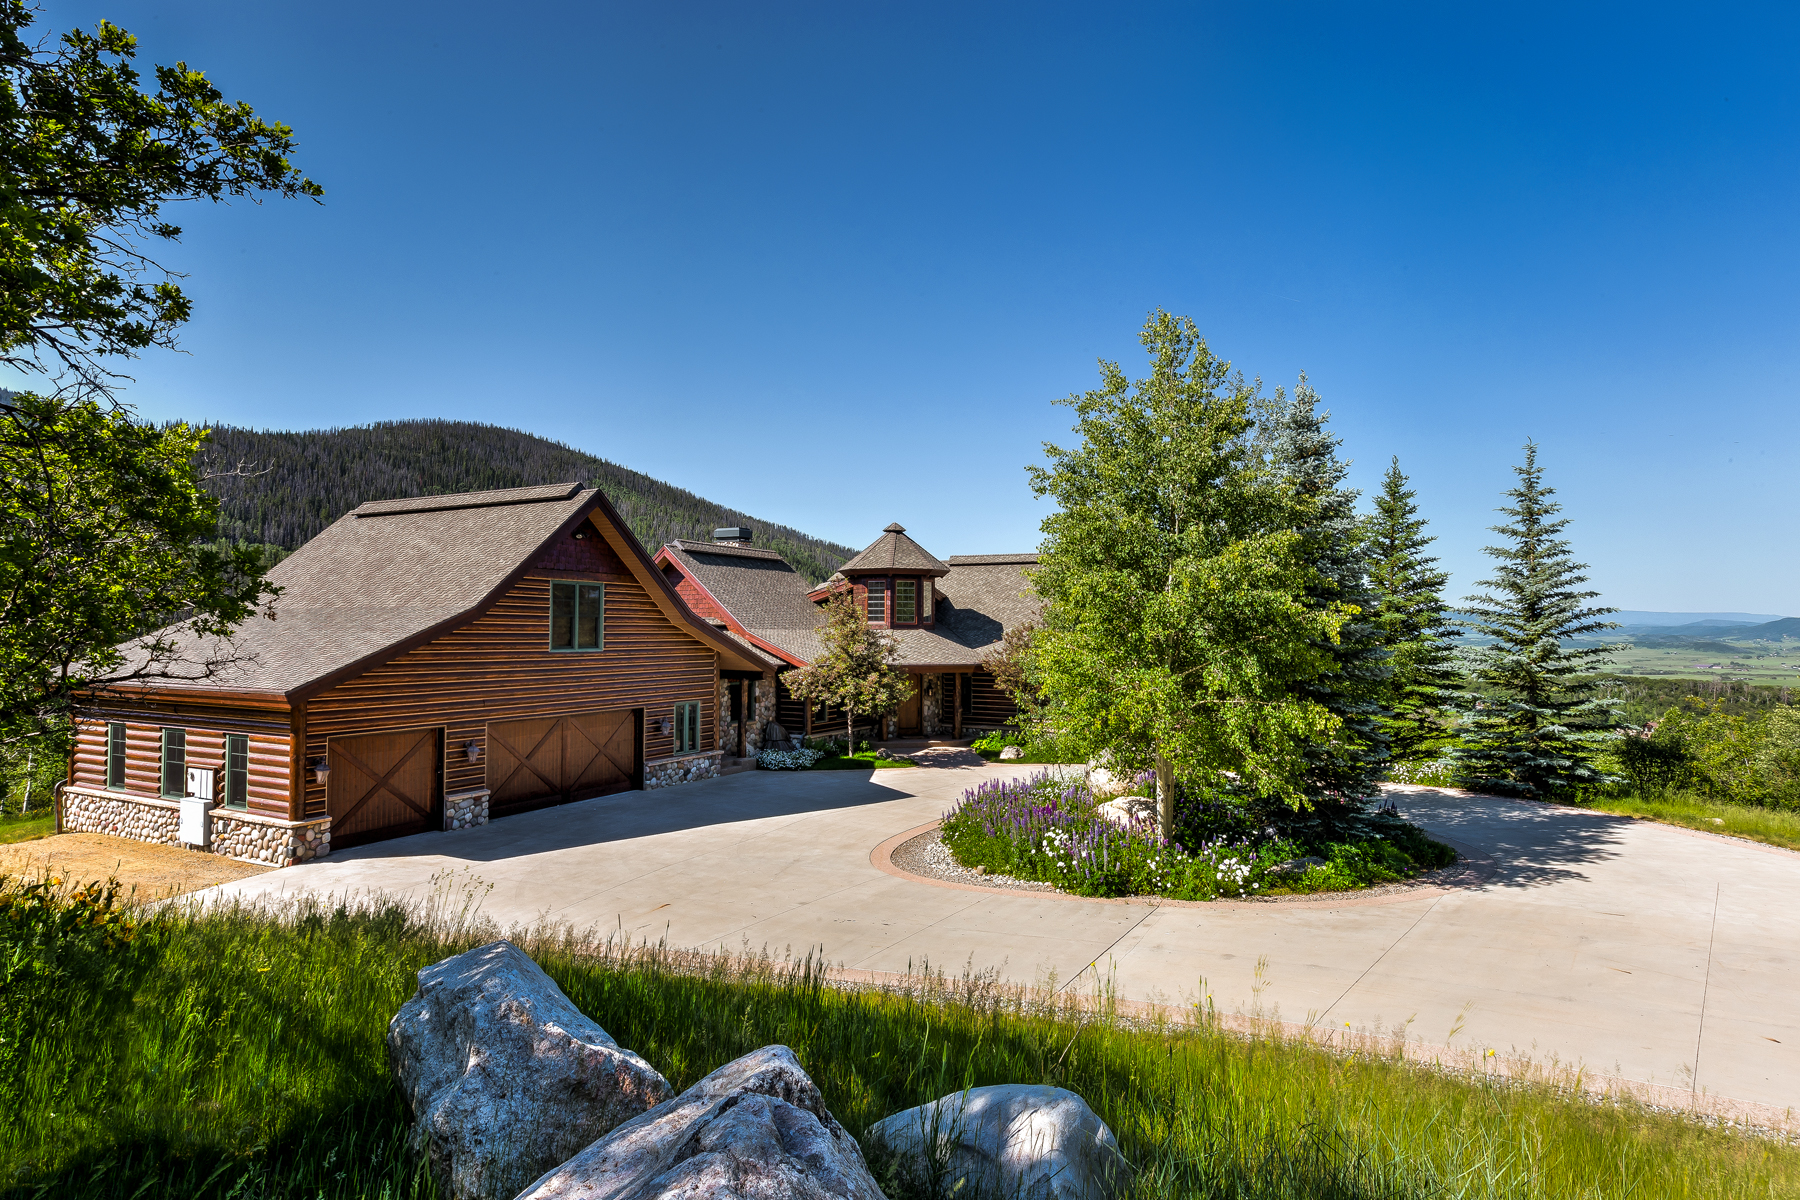 Casa Unifamiliar por un Venta en Catamount Ranch 34200 Catamount Dr. Steamboat Springs, Colorado, 80487 Estados Unidos